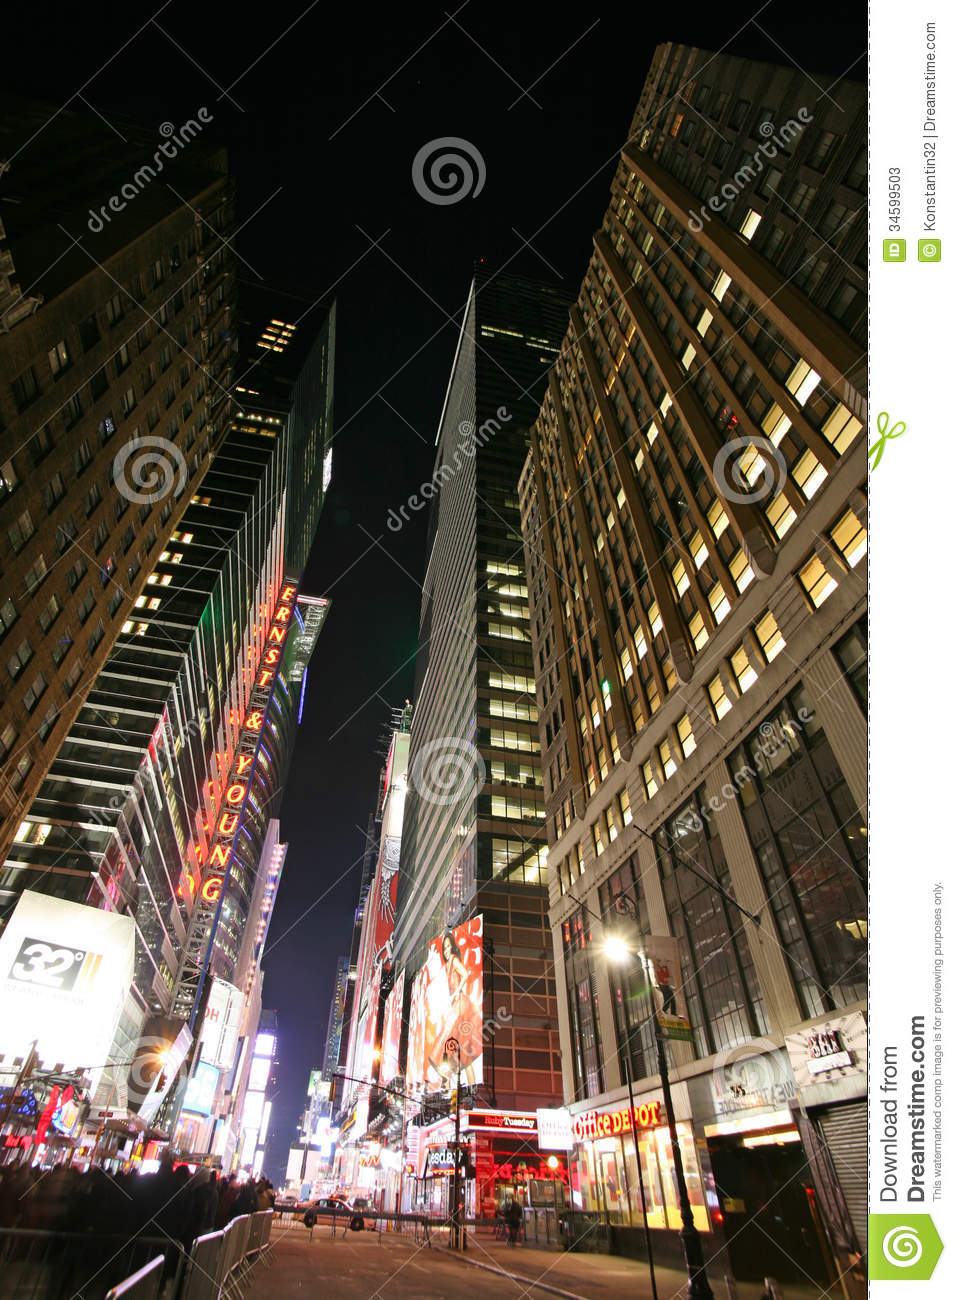 Times Square, New York Street Night Life. New York City